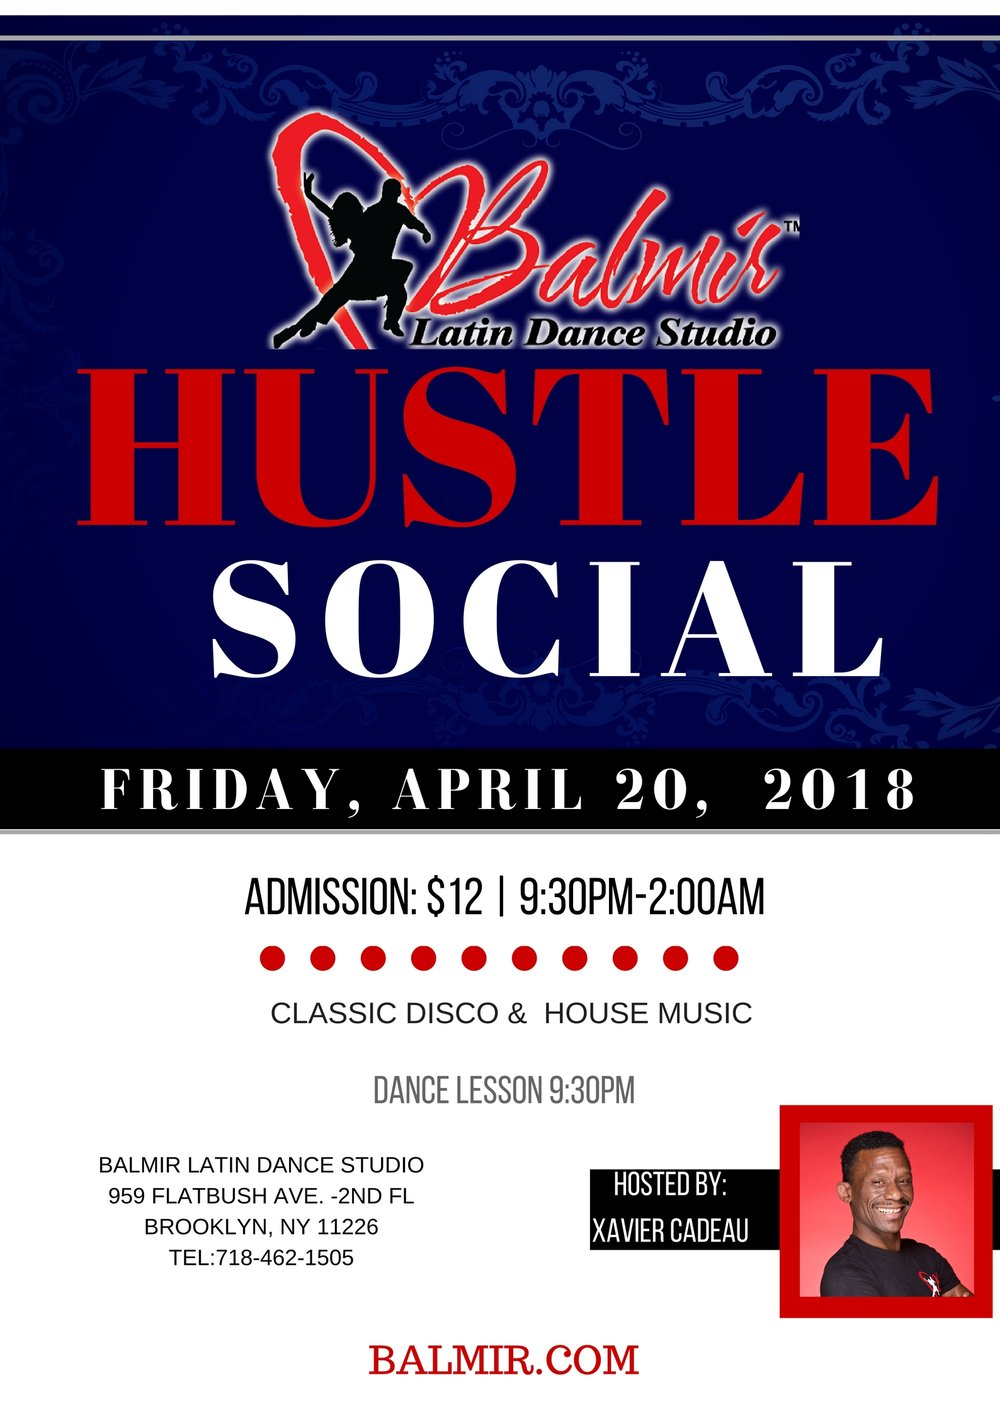 HUSTLE APRIL 2018 Dance Social in Brooklyn, NY at Balmir Latin Dance Studio